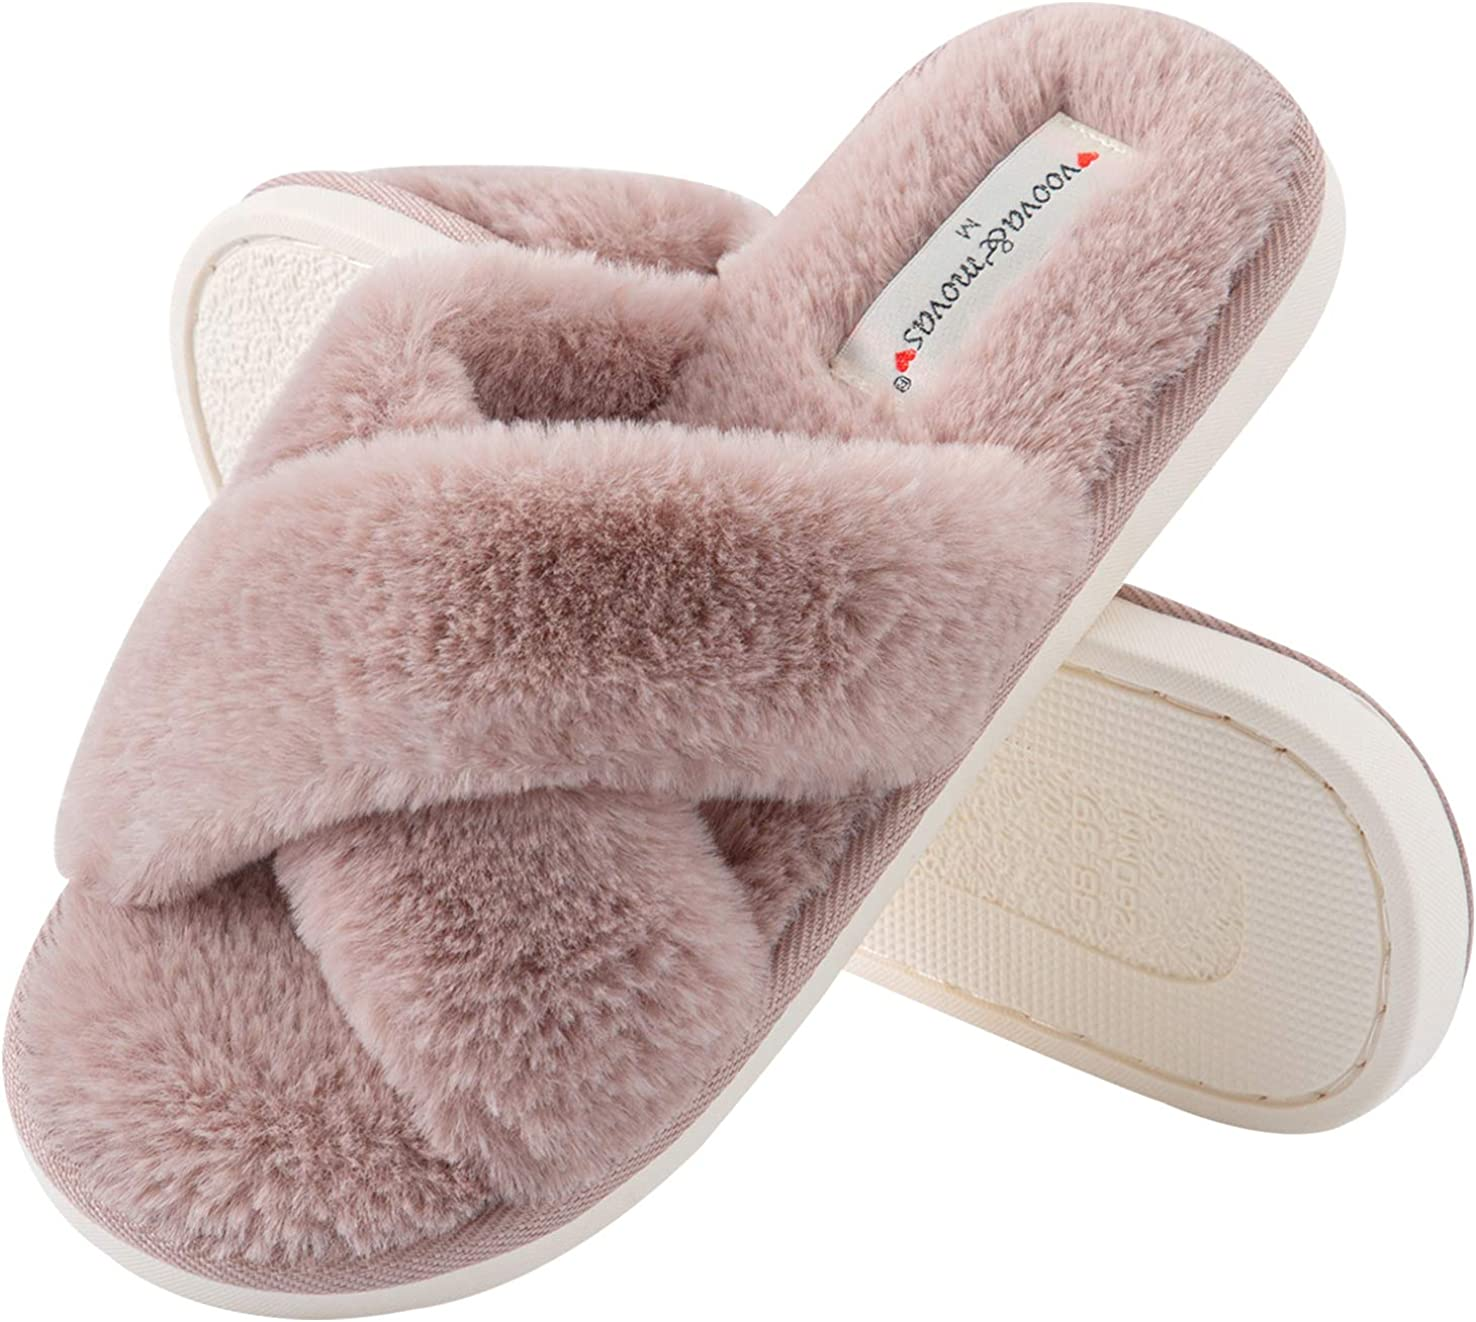 Slippers for Women, Fuzzy Slides for Girls, US Size 6-10, Pink Comfortable Soft Furry Faur Fur Fleece Open Toe Non Slip Waterproof Durable Rubber Sole, Flurry Sandals Used Indoor Outdoor